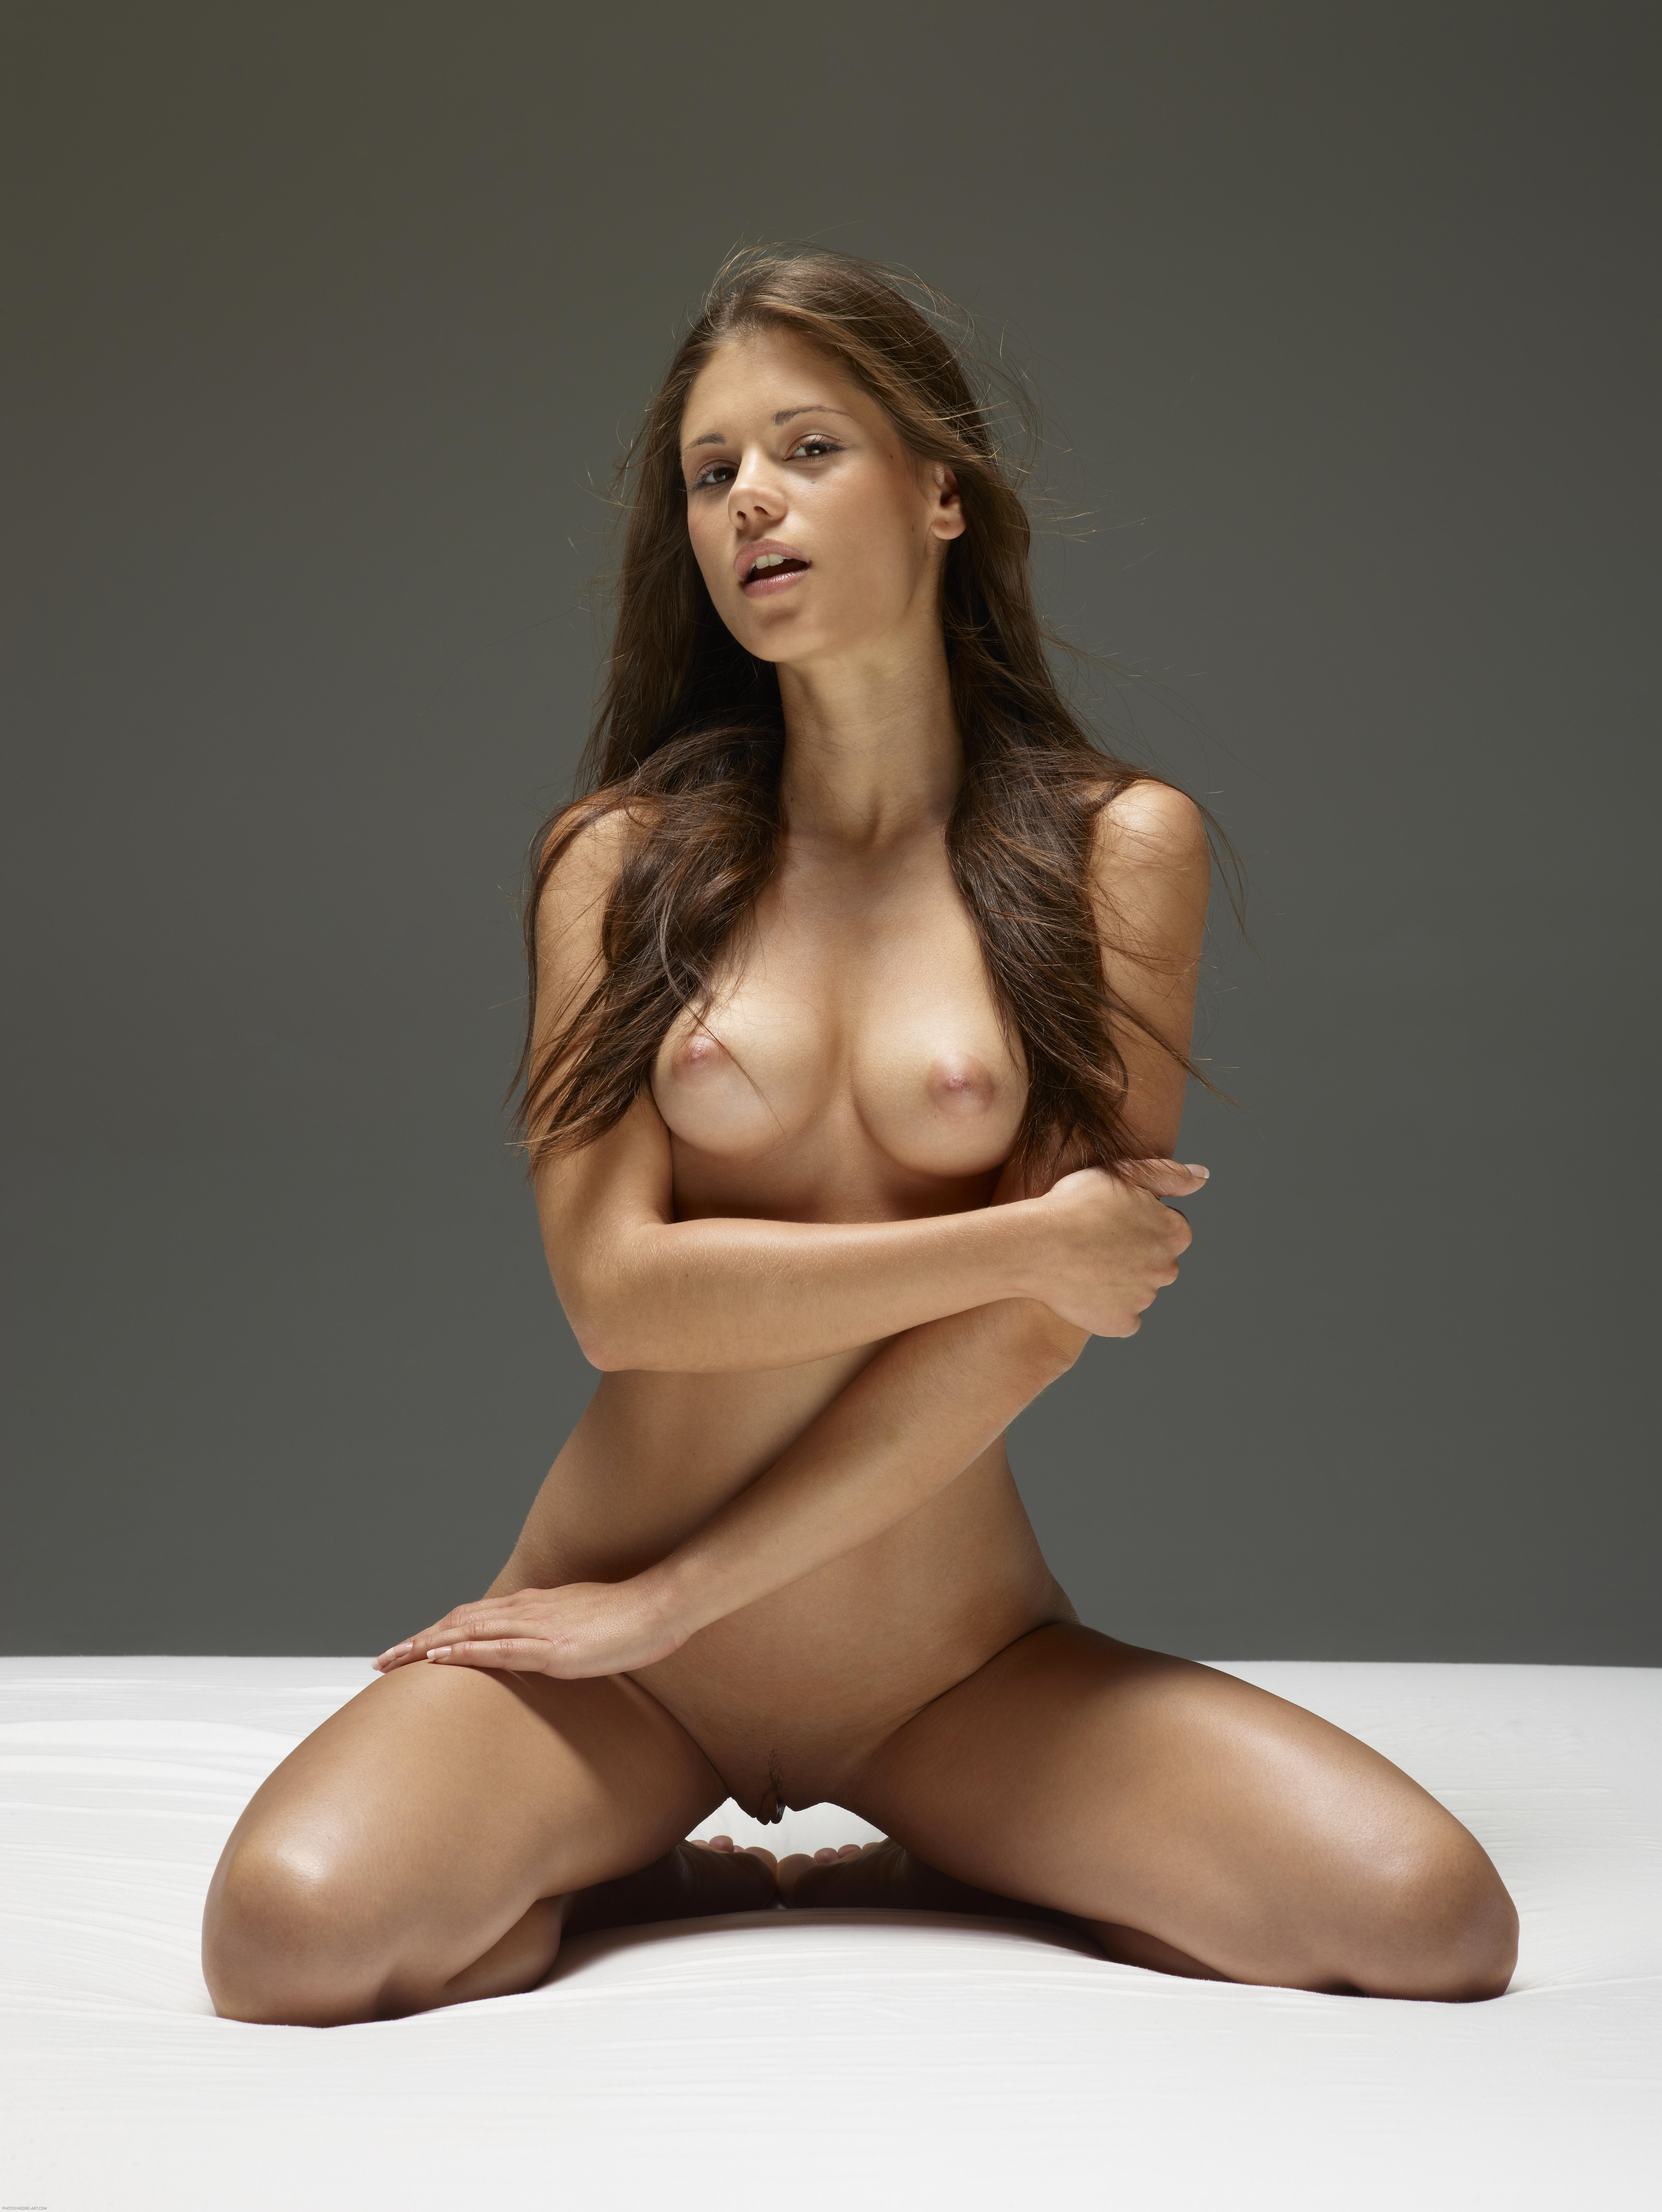 Magnificant Naked Girl Pictures Quality The Zoom Is -8807